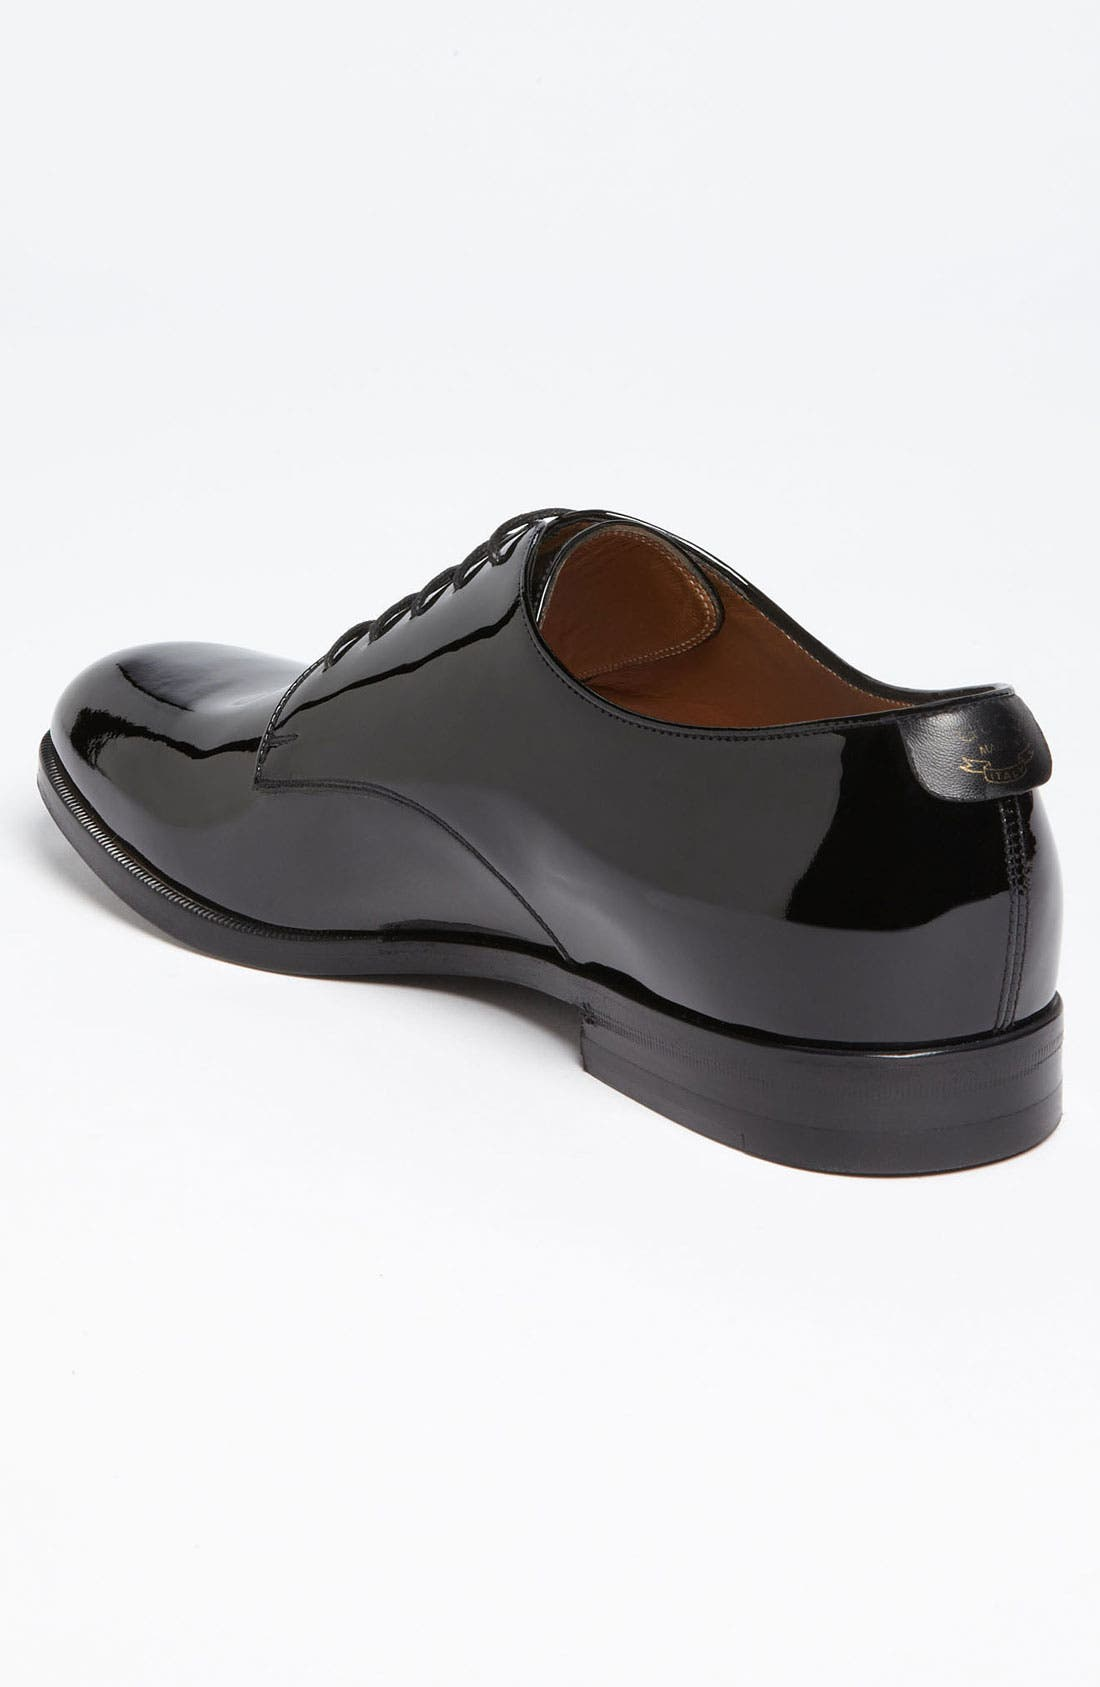 Alternate Image 2  - Gucci 'Clerck' Patent Derby